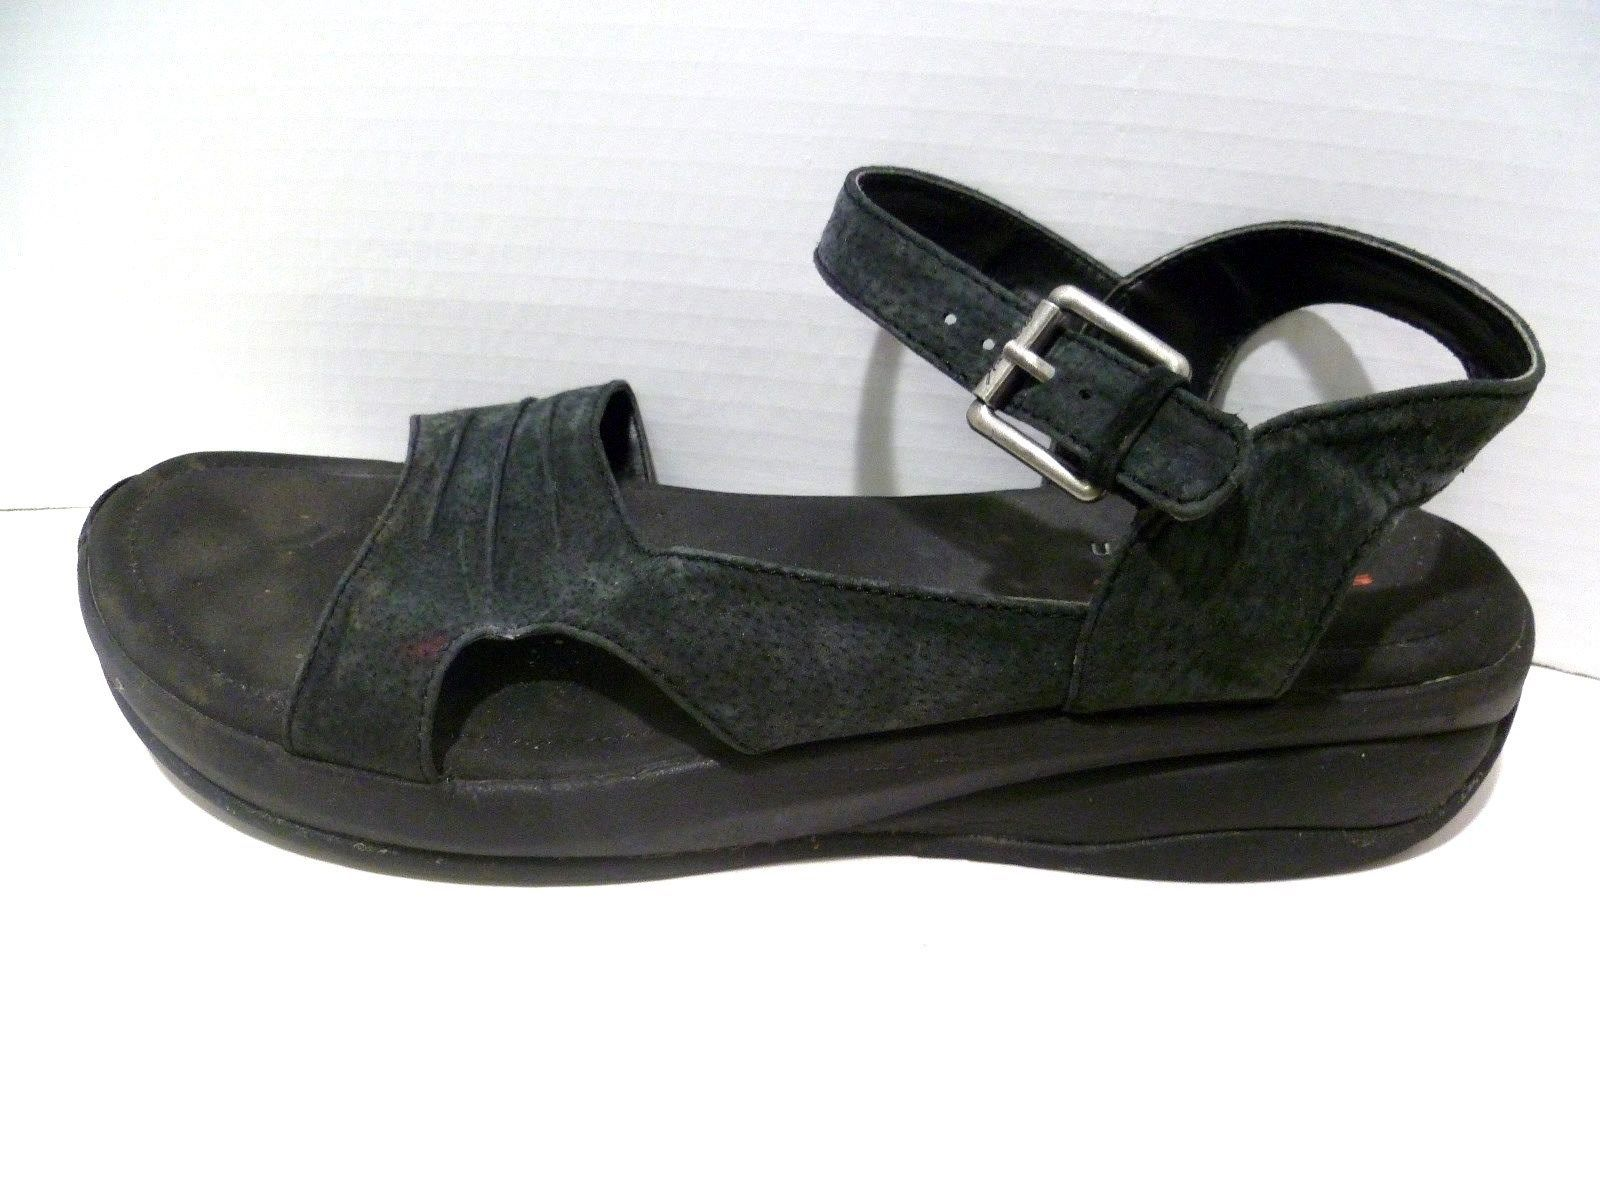 be262ad25a8e Womens 10 Sandals Skechers Black Suede and 50 similar items. 57